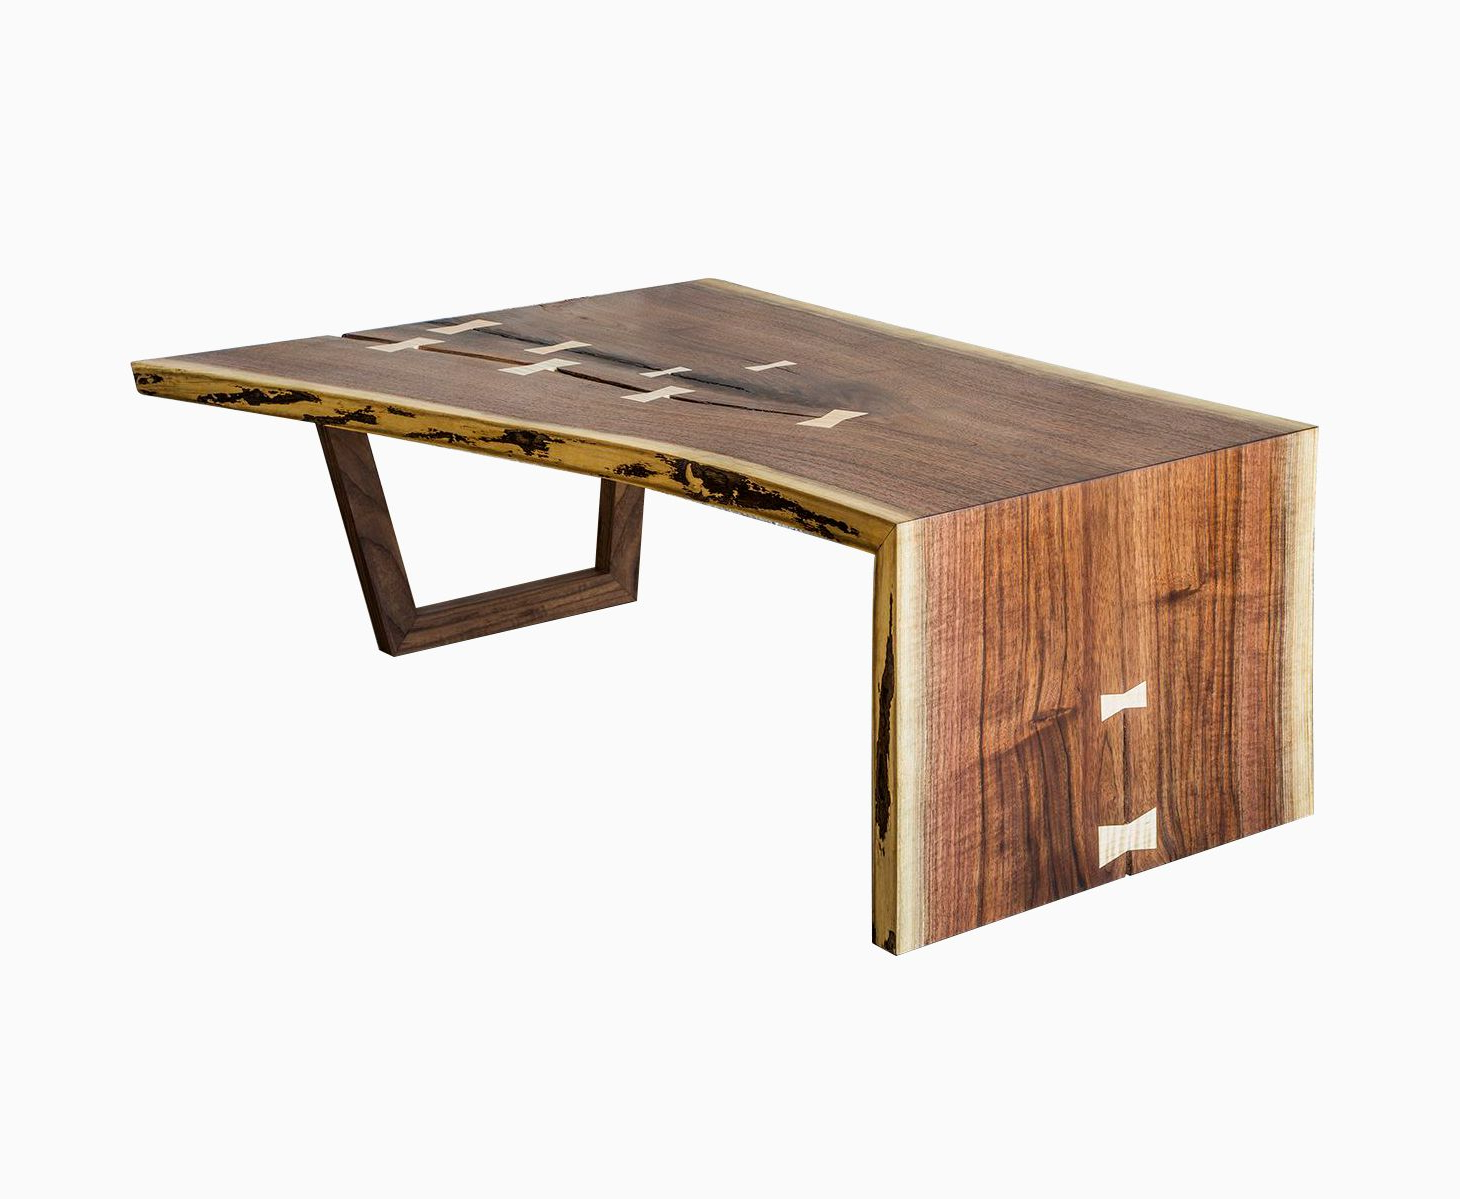 Buy A Hand Crafted Live Edge Walnut Waterfall Coffee Table, Made To With Regard To Latest Waterfall Coffee Tables (View 3 of 20)